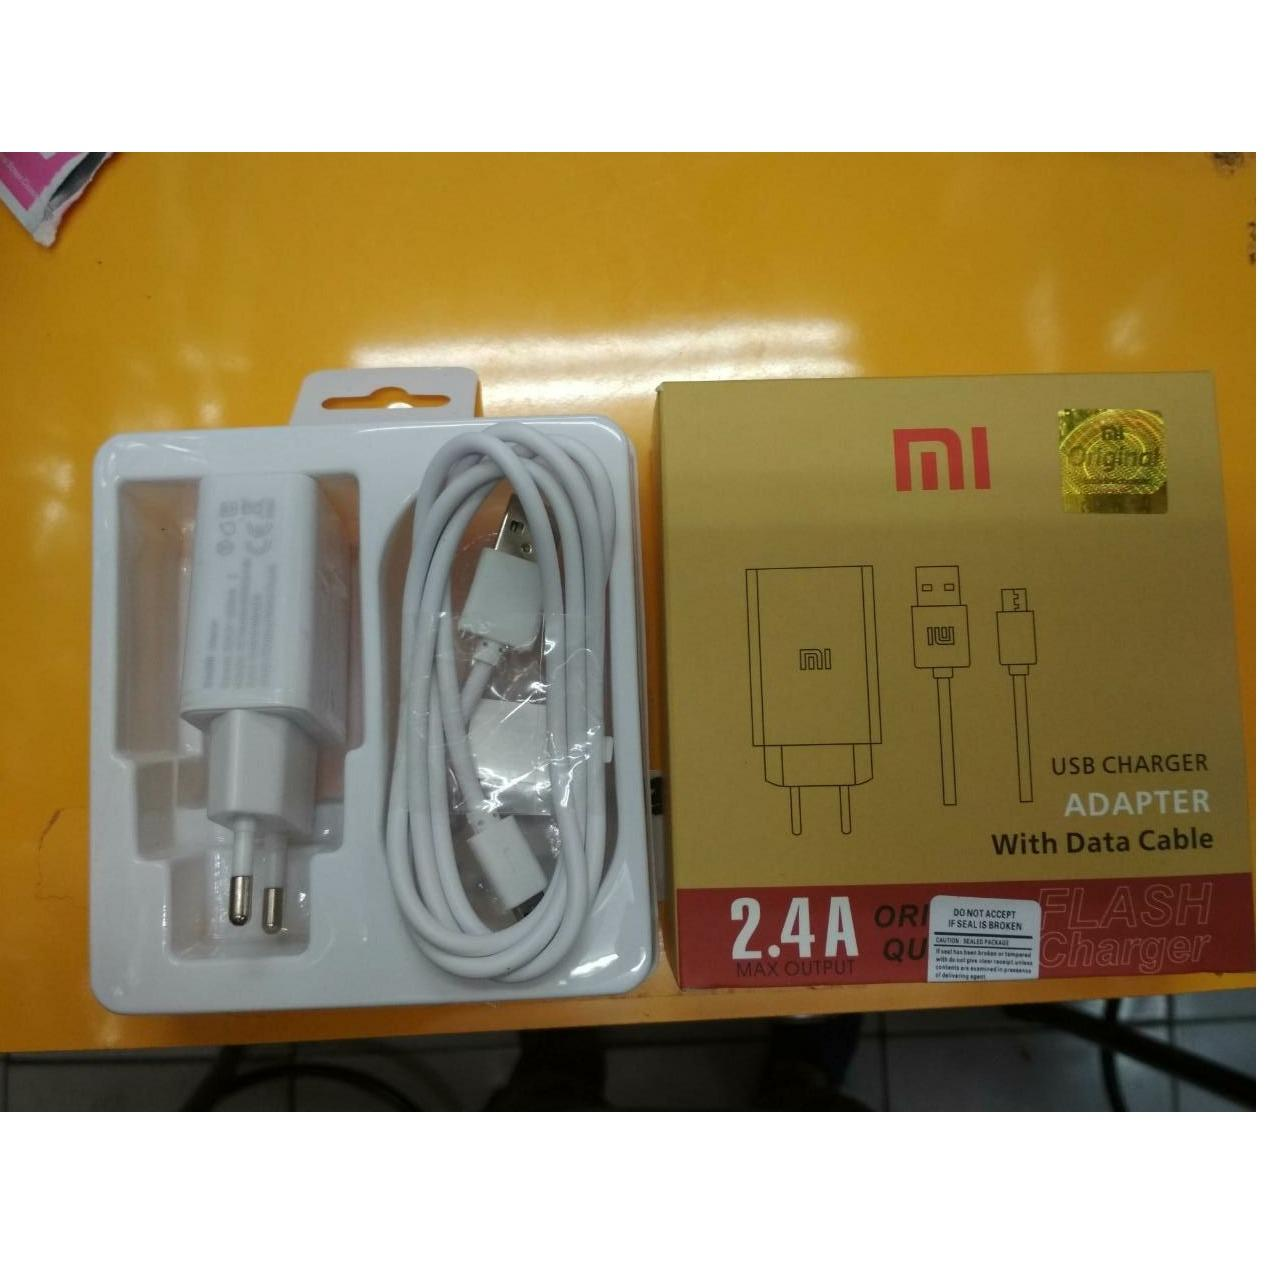 Fitur Ziacom Cable Data Sata With Clip Red 45cm Dan Harga Terbaru Kabel Jepit Usb Charger Xiaomi Adapter 24a